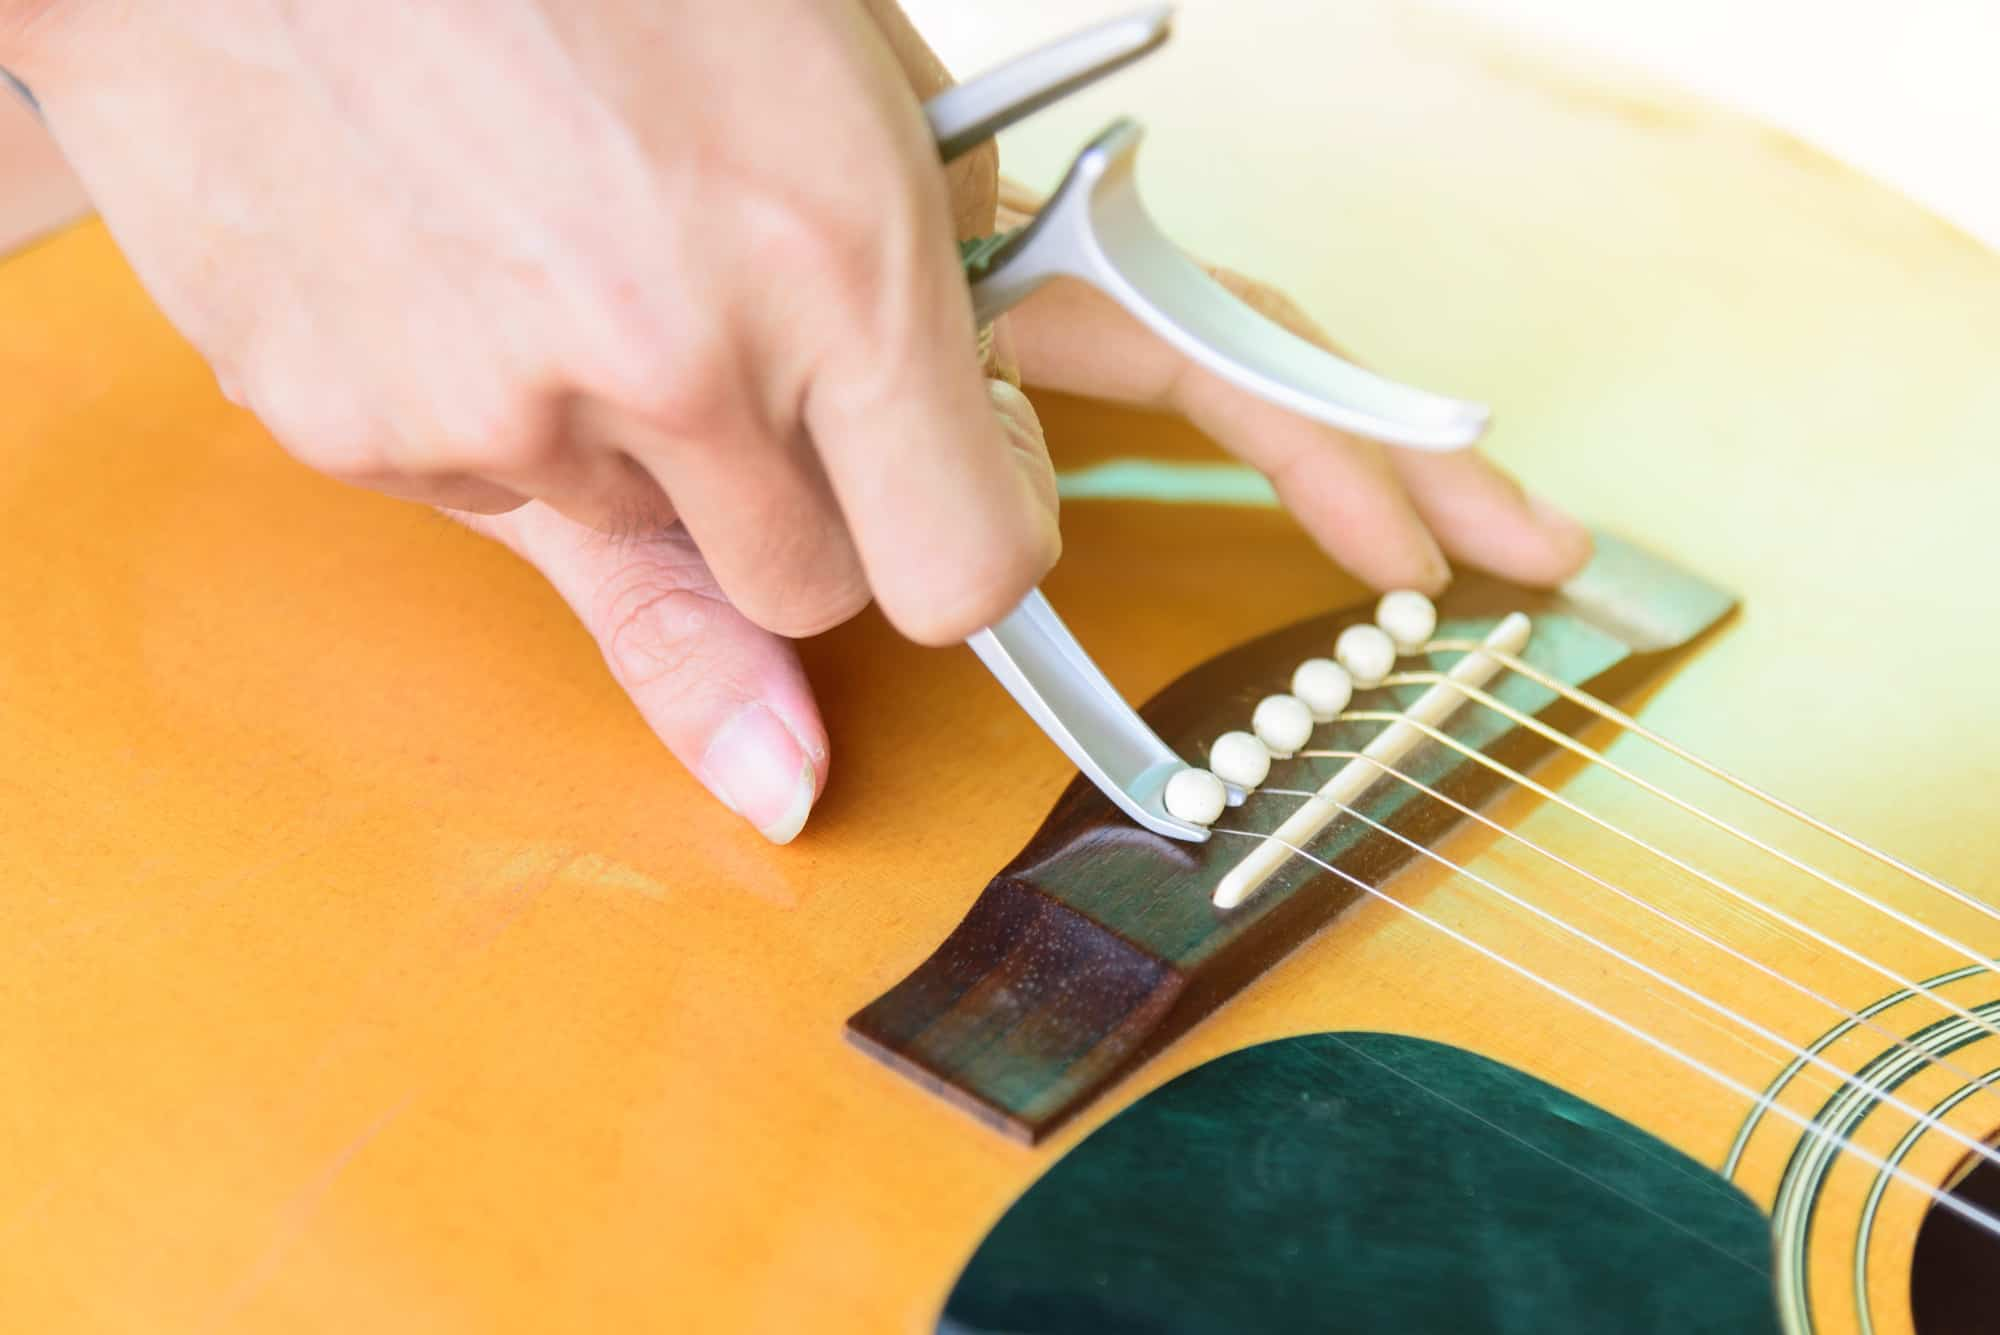 How Often Should You Change Your Guitar Strings?